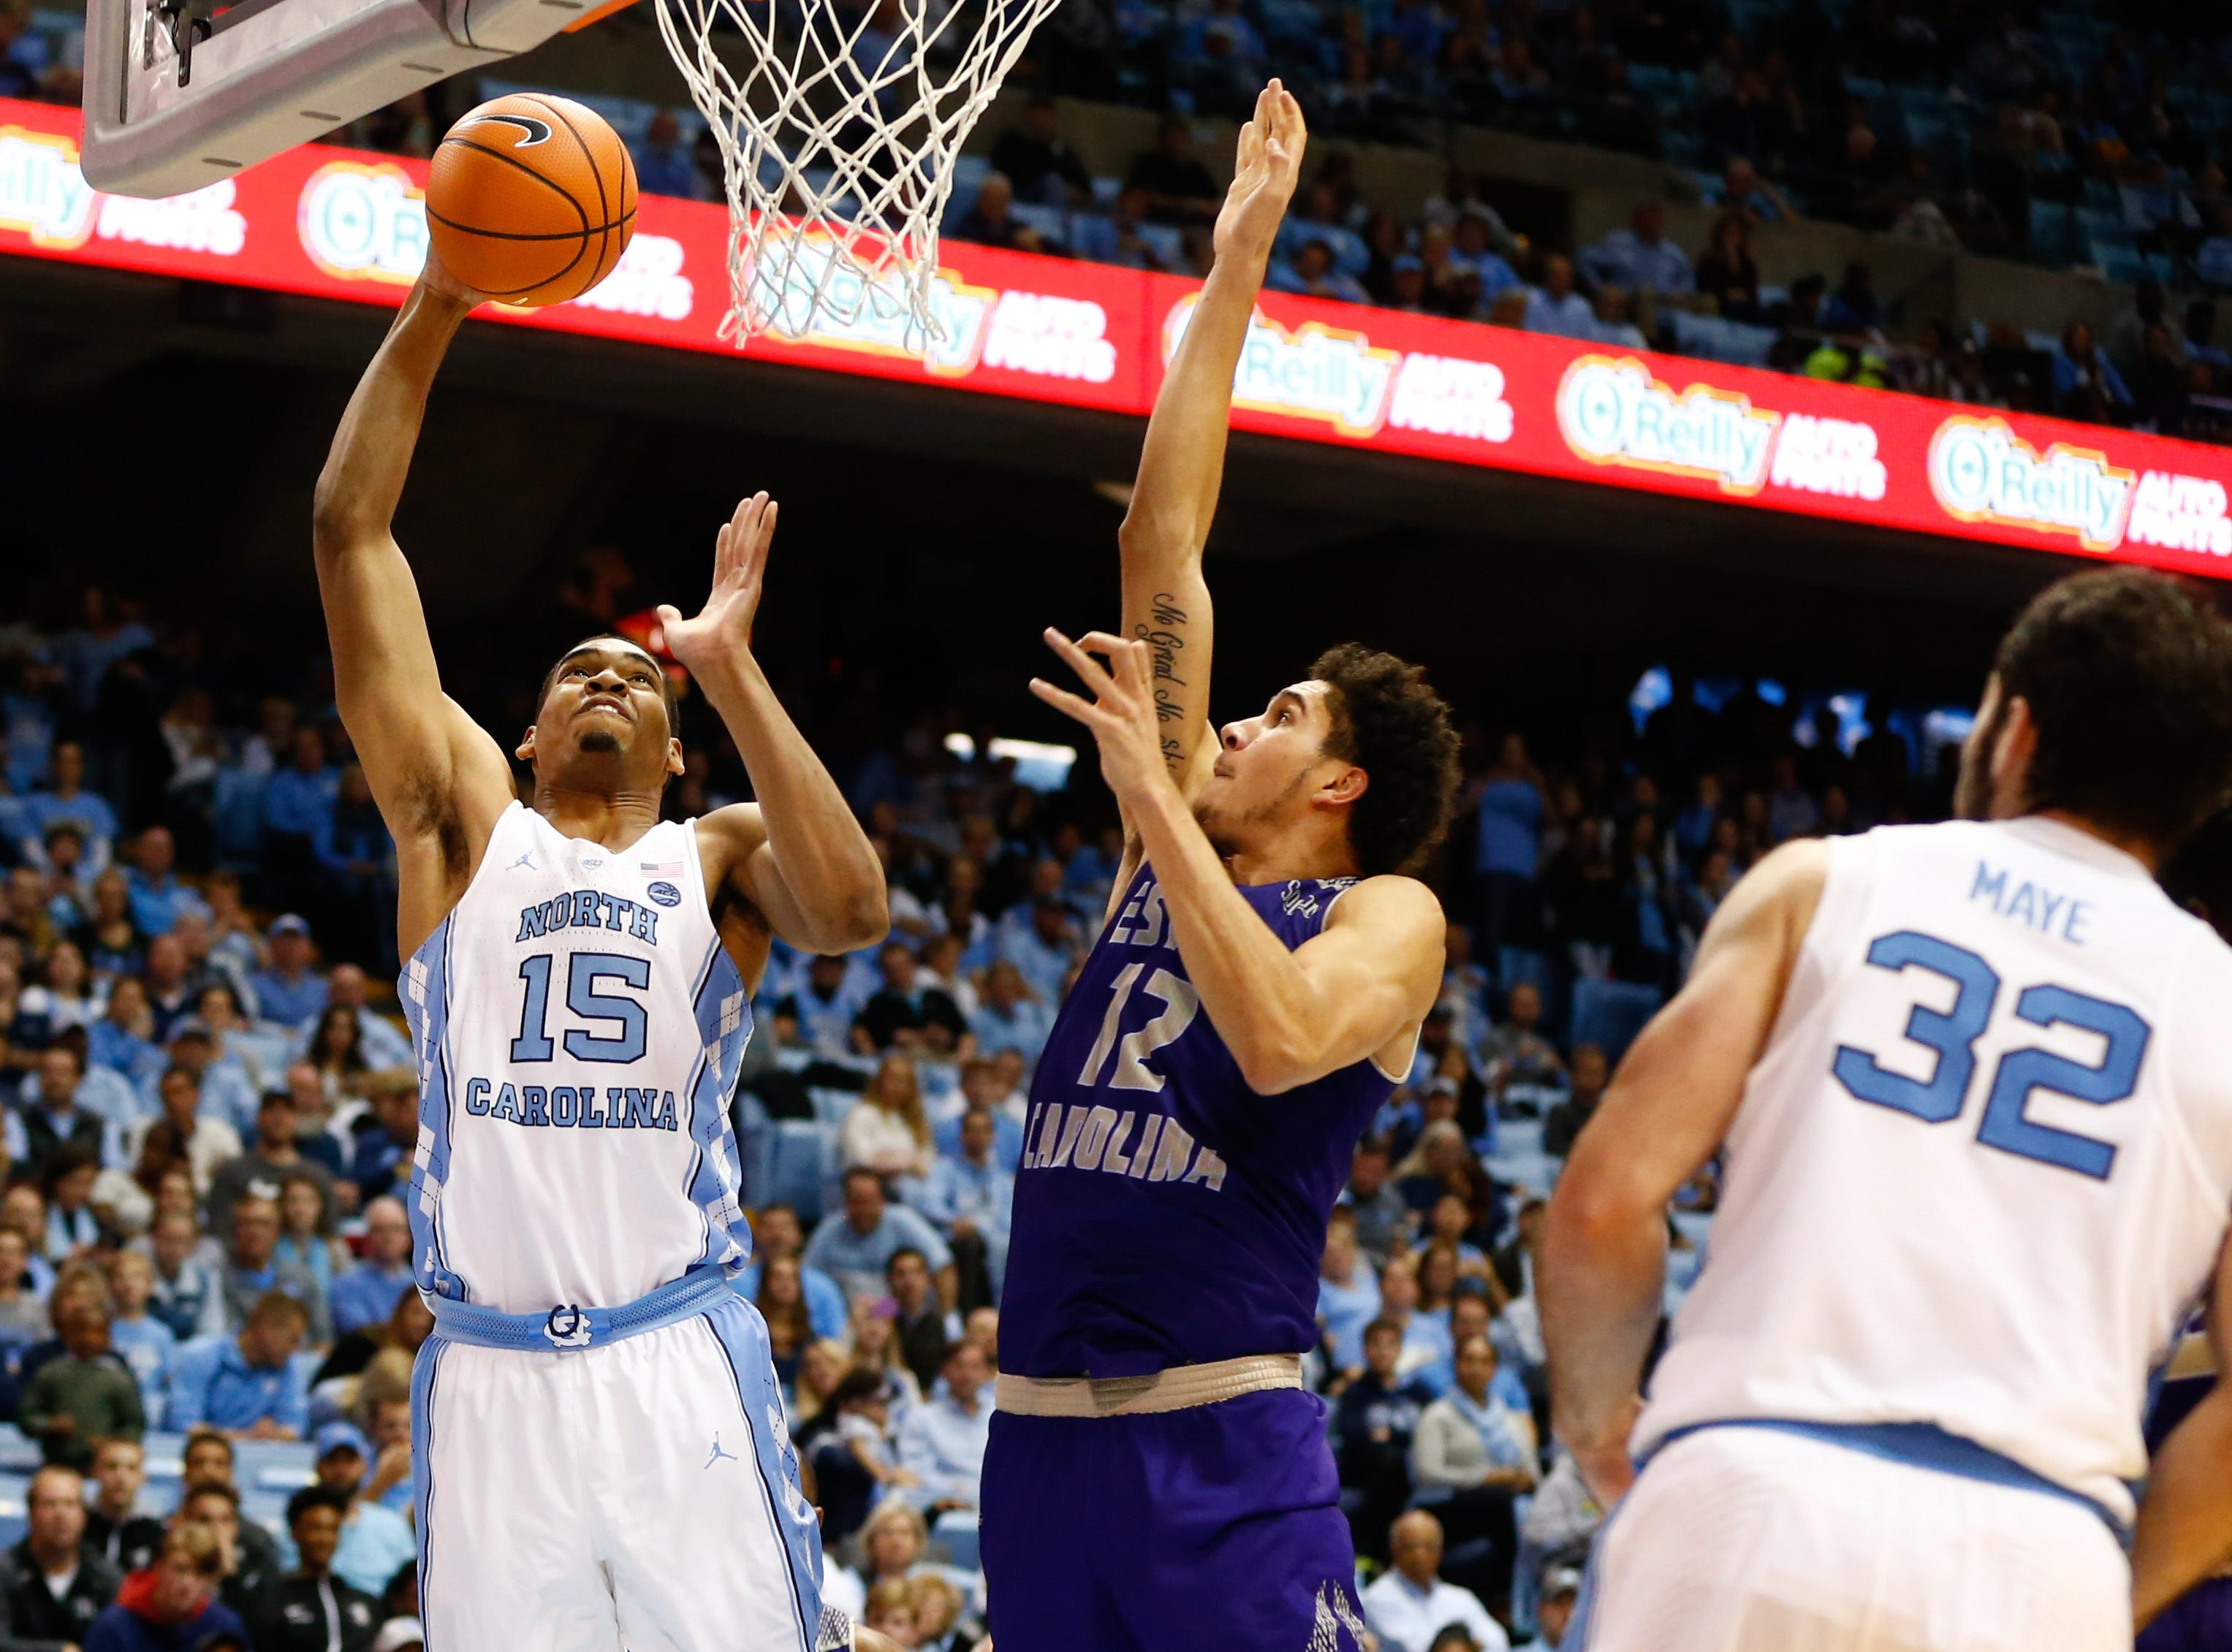 Dec 6, 2017; Chapel Hill, NC, USA; North Carolina Tar Heels forward Garrison Brooks (15) shoots the ball against Western Carolina Catamounts forward Marc Gosselin (12) in the second half at Dean E. Smith Center. Mandatory Credit: Jeremy Brevard-USA TODAY Sports